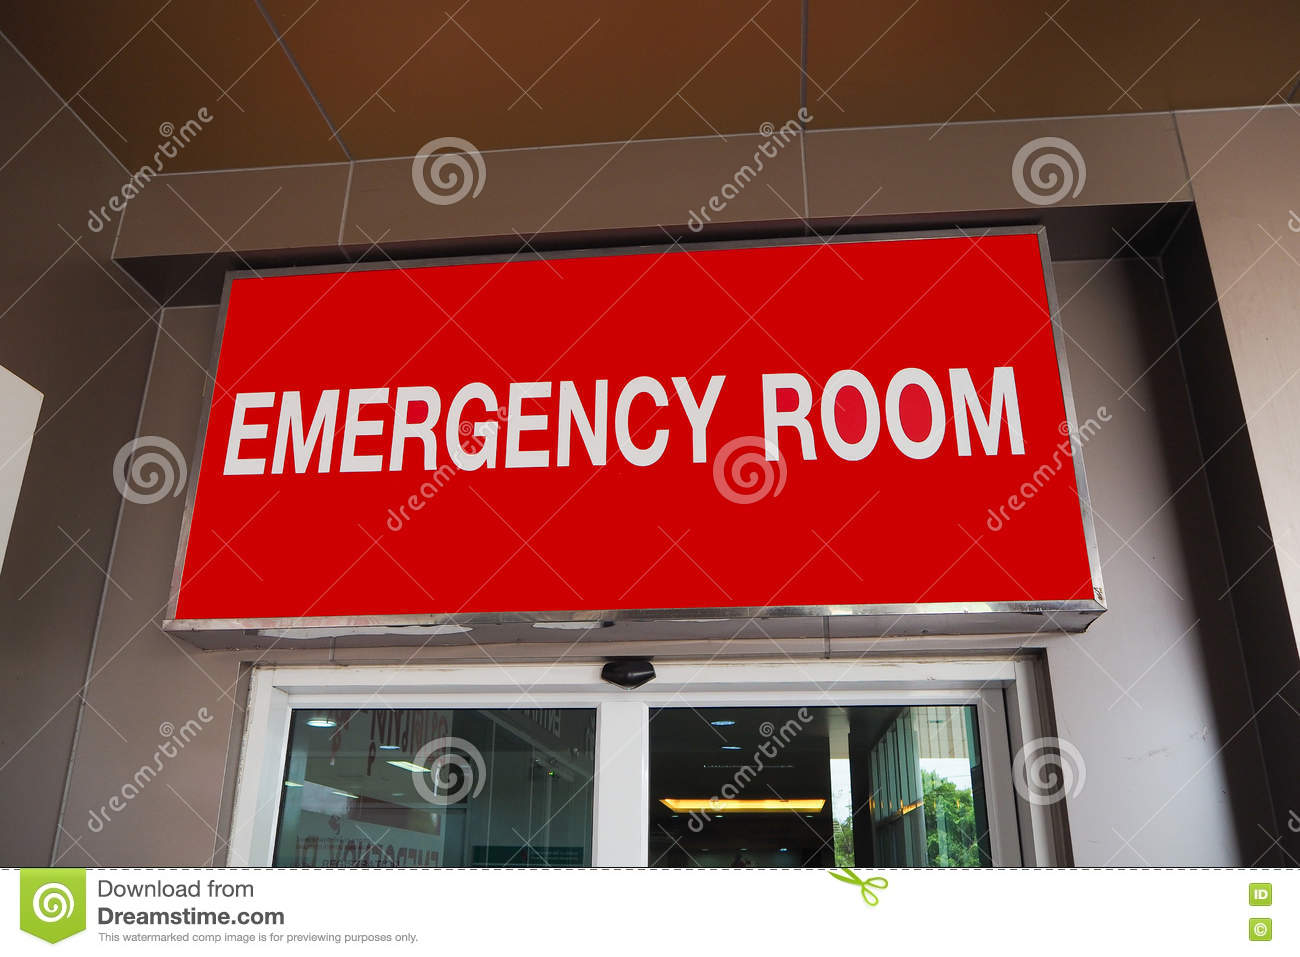 Red emergency room symbol stock photo image of danger 73894242 red emergency room symbol buycottarizona Images